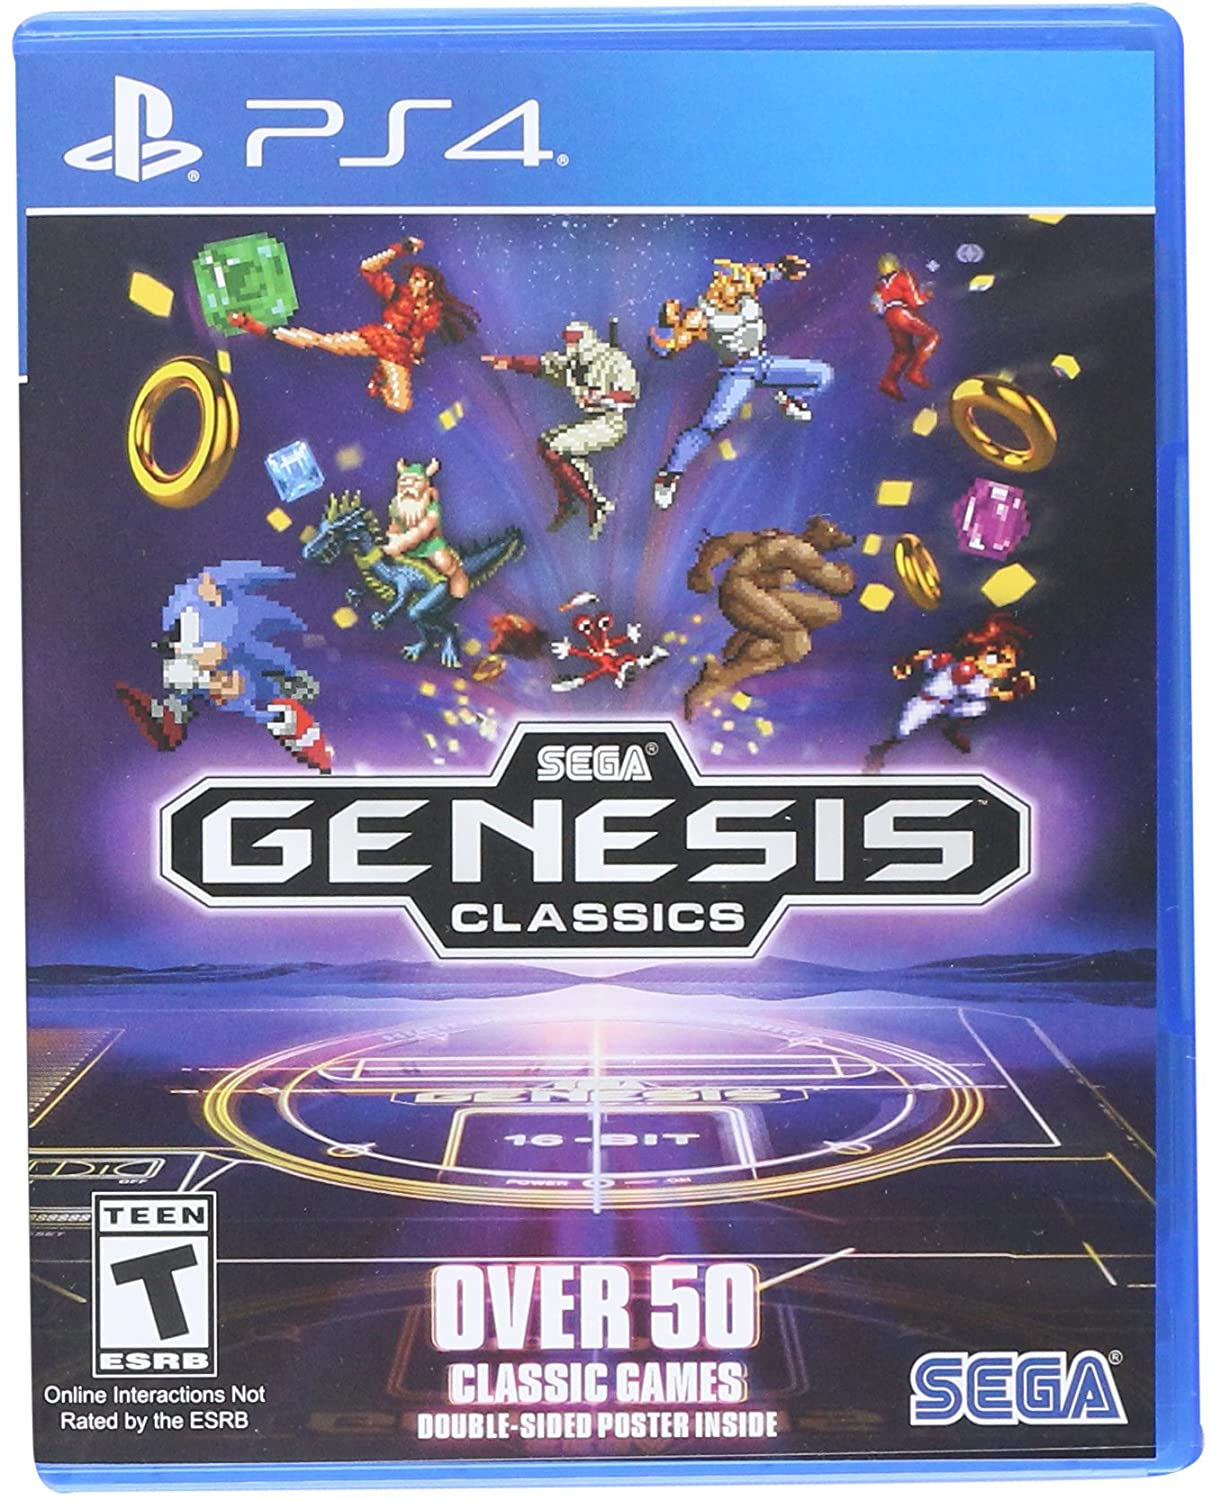 Amazon com: SEGA Genesis Classics - PlayStation 4: Sega of America